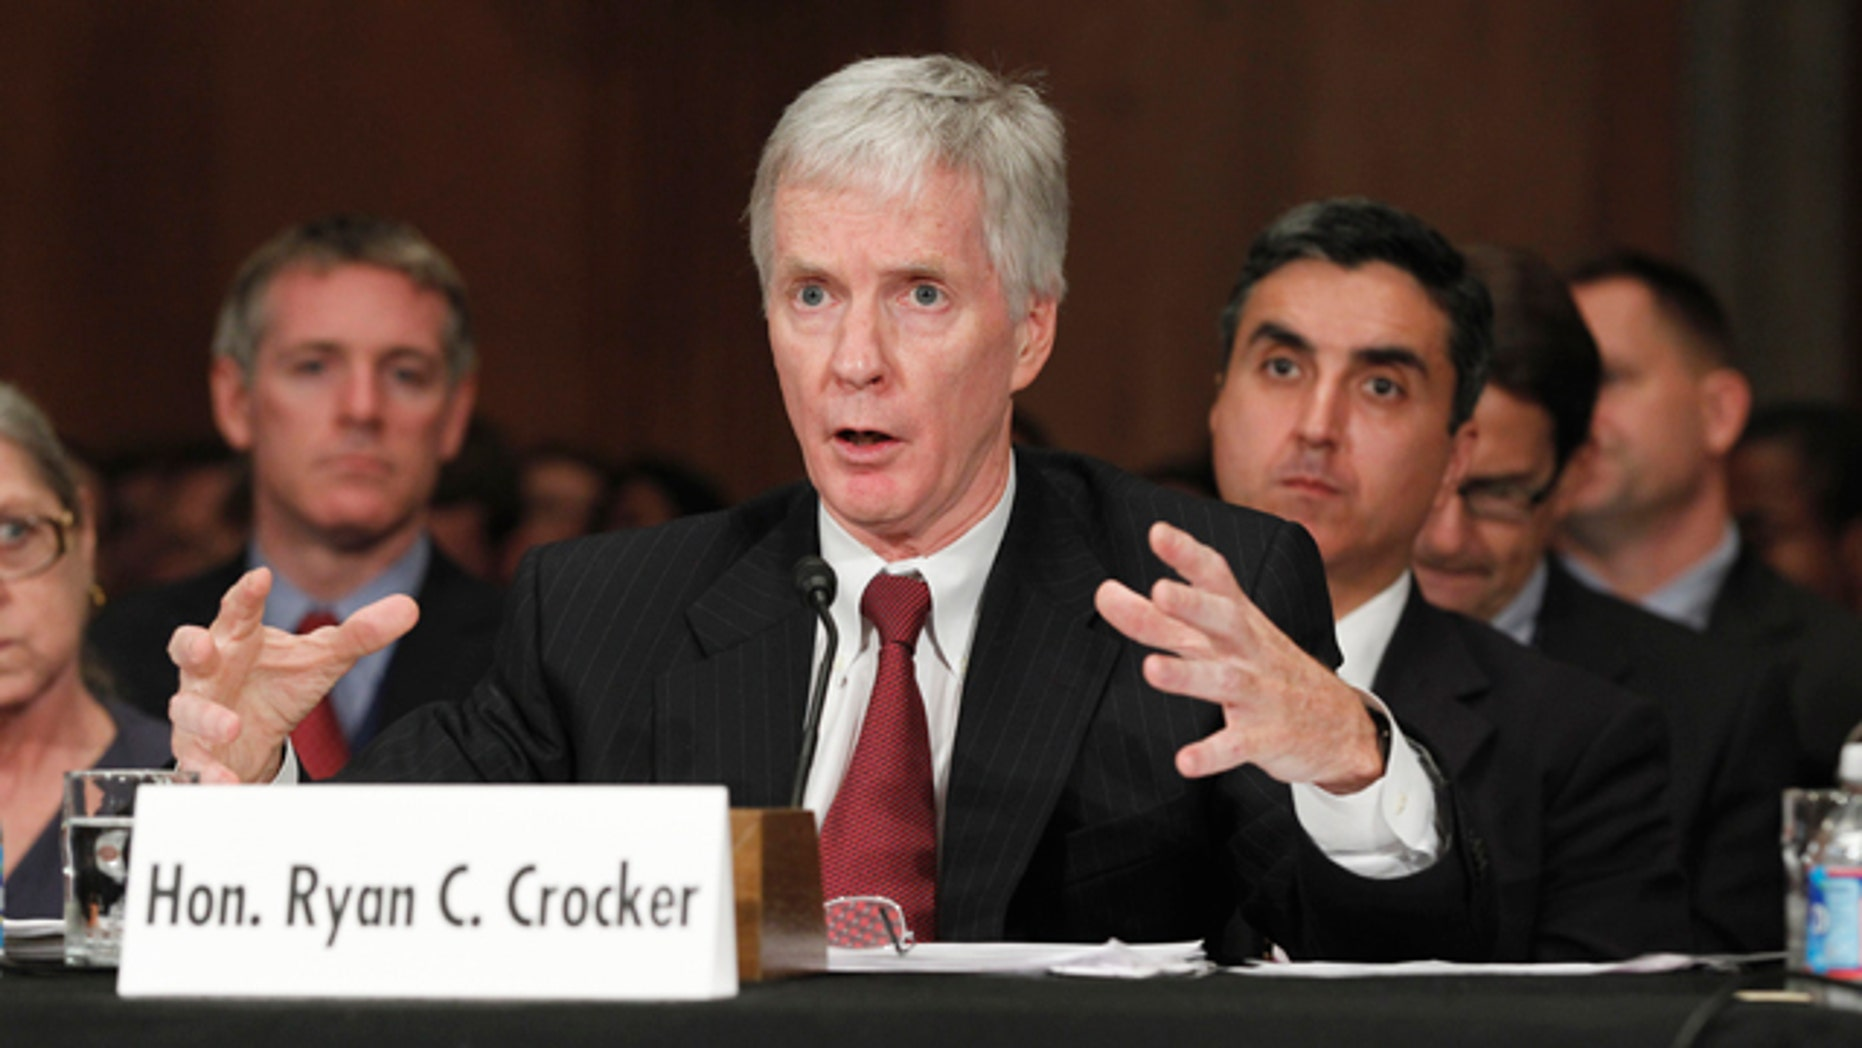 June 8: Ryan Crocker, President Barack Obama's choice to become ambassador to Afghanistan, testifies on Capitol Hill in Washington before the Senate Foreign Relations Committee hearing on his nomination.